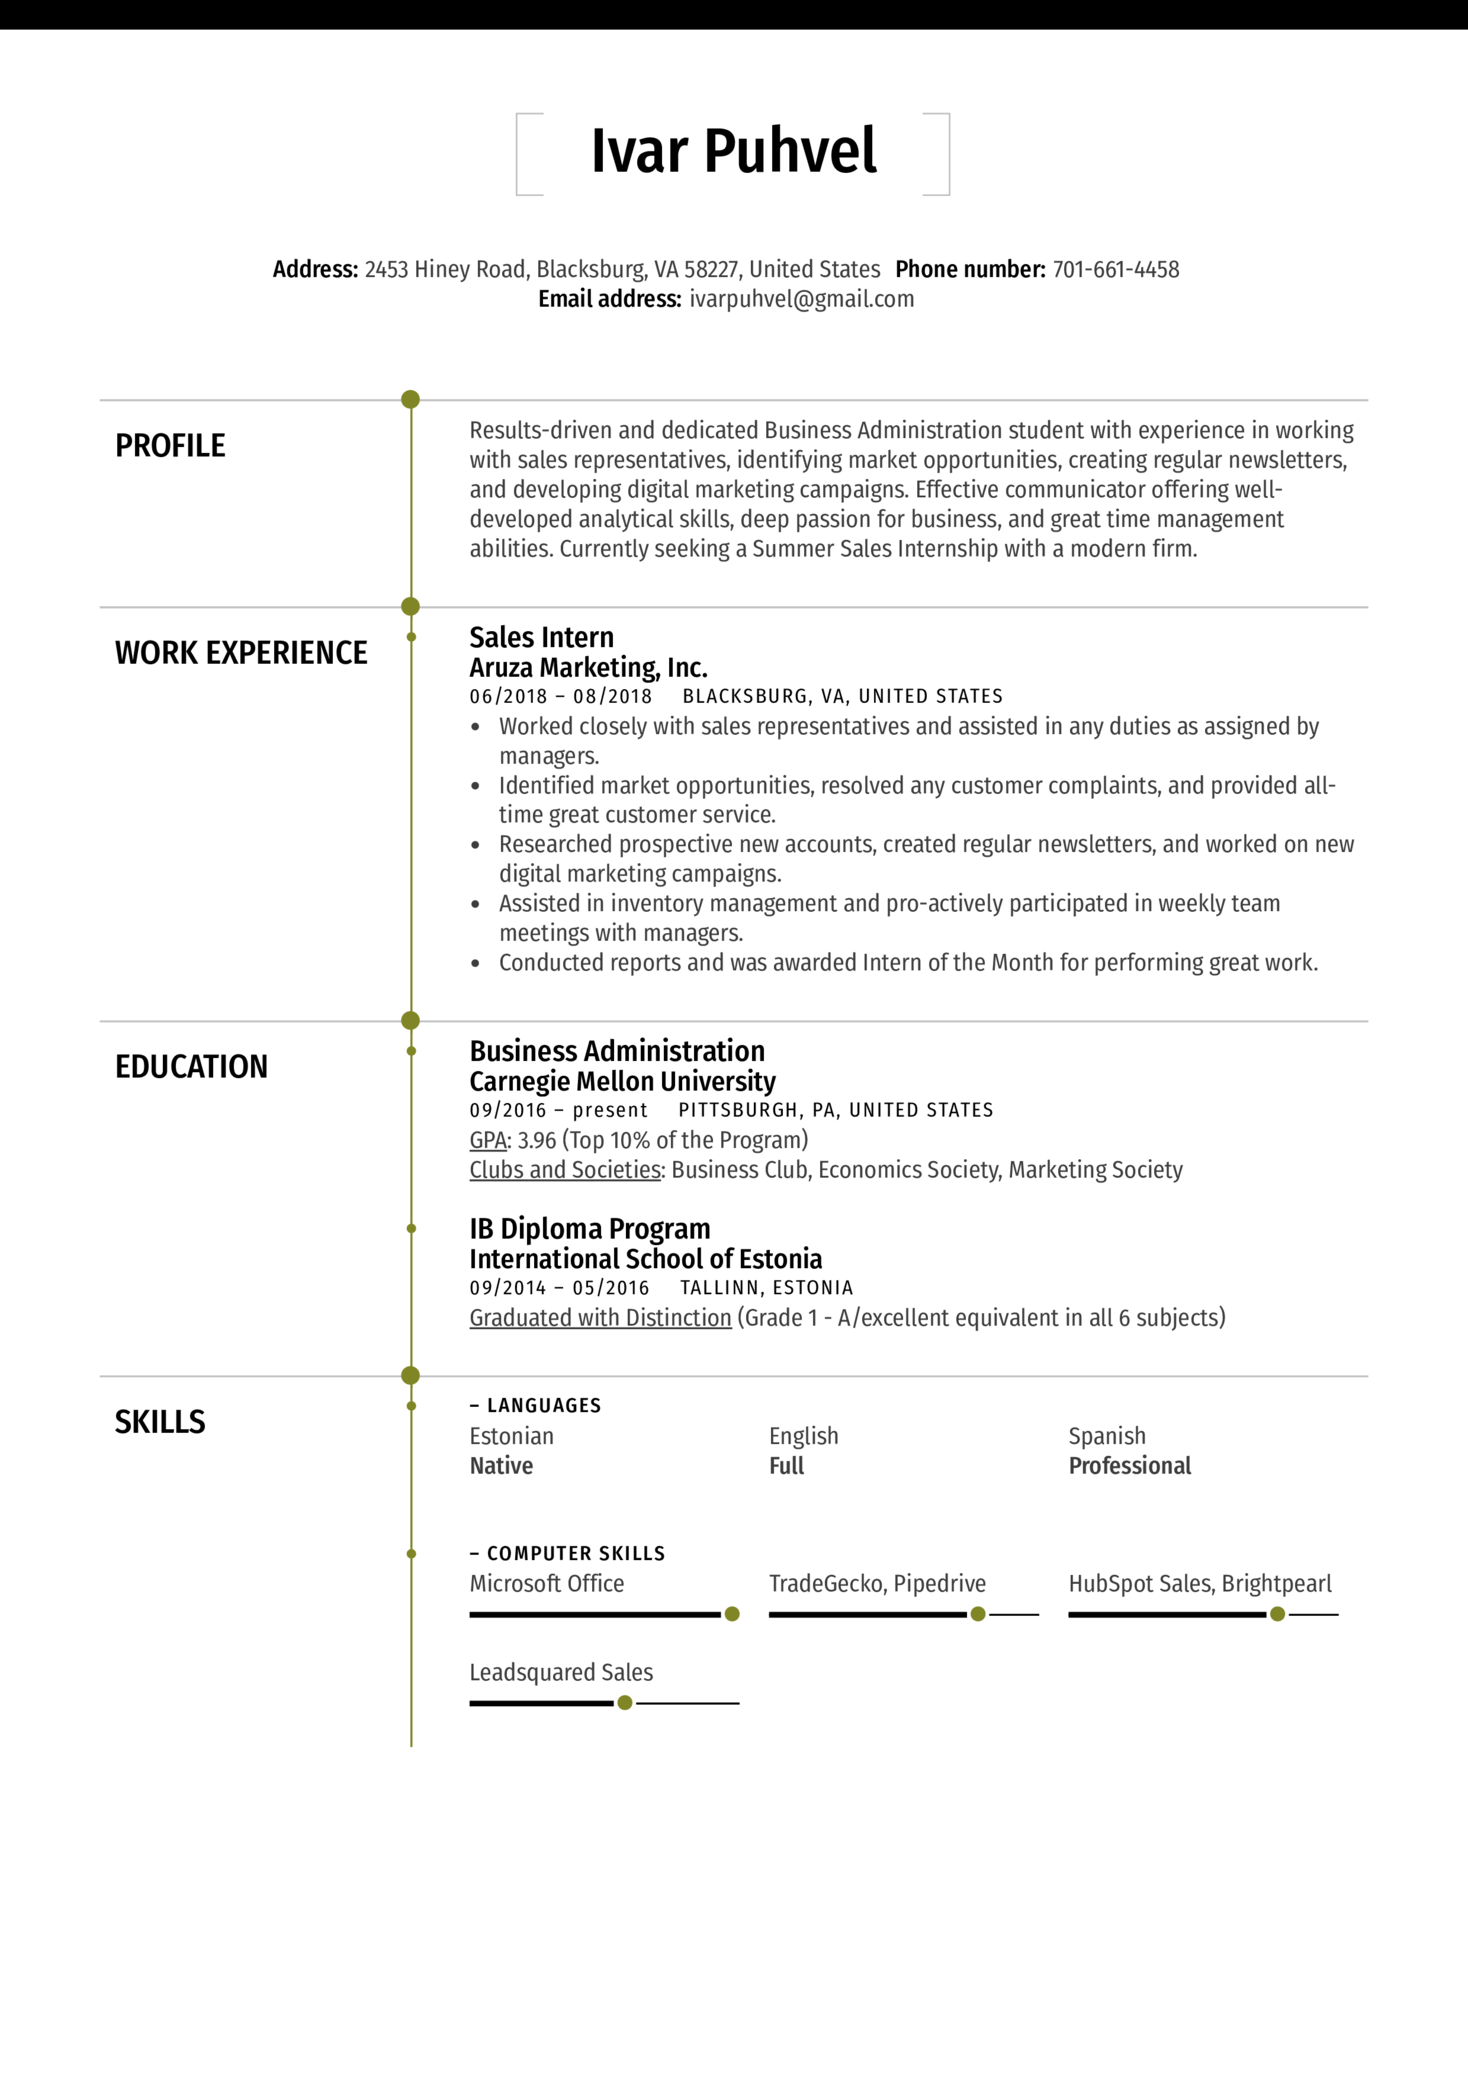 Sales Intern Resume Sample (Parte 1)